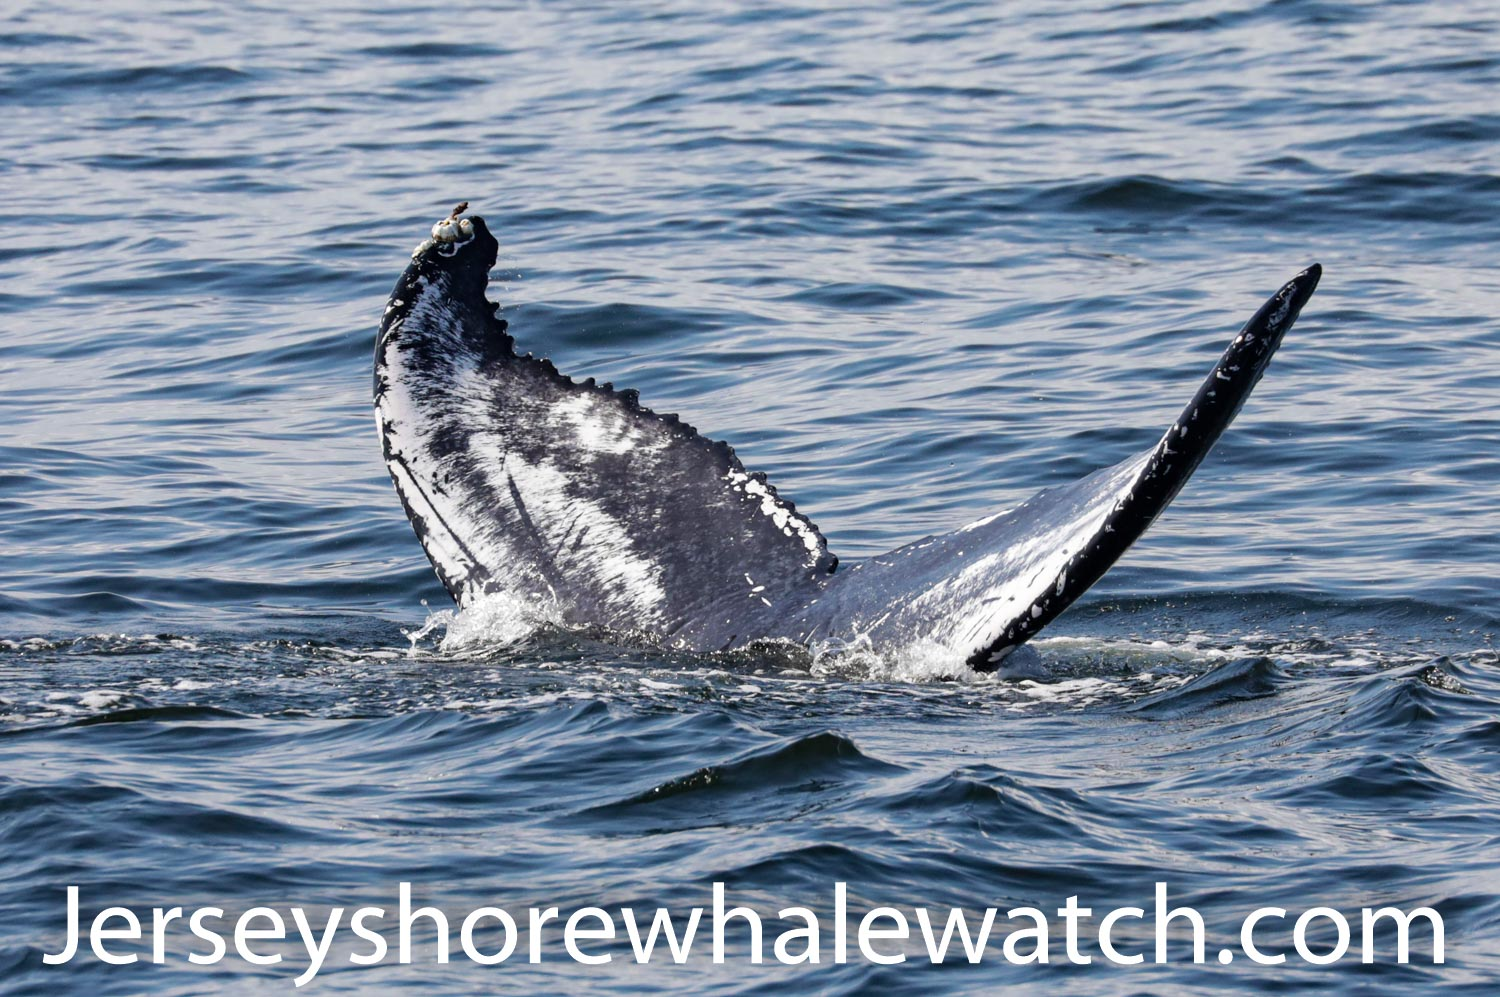 , We guarantee you will see a whale!, Jersey Shore Whale Watch Tour 2021 Season